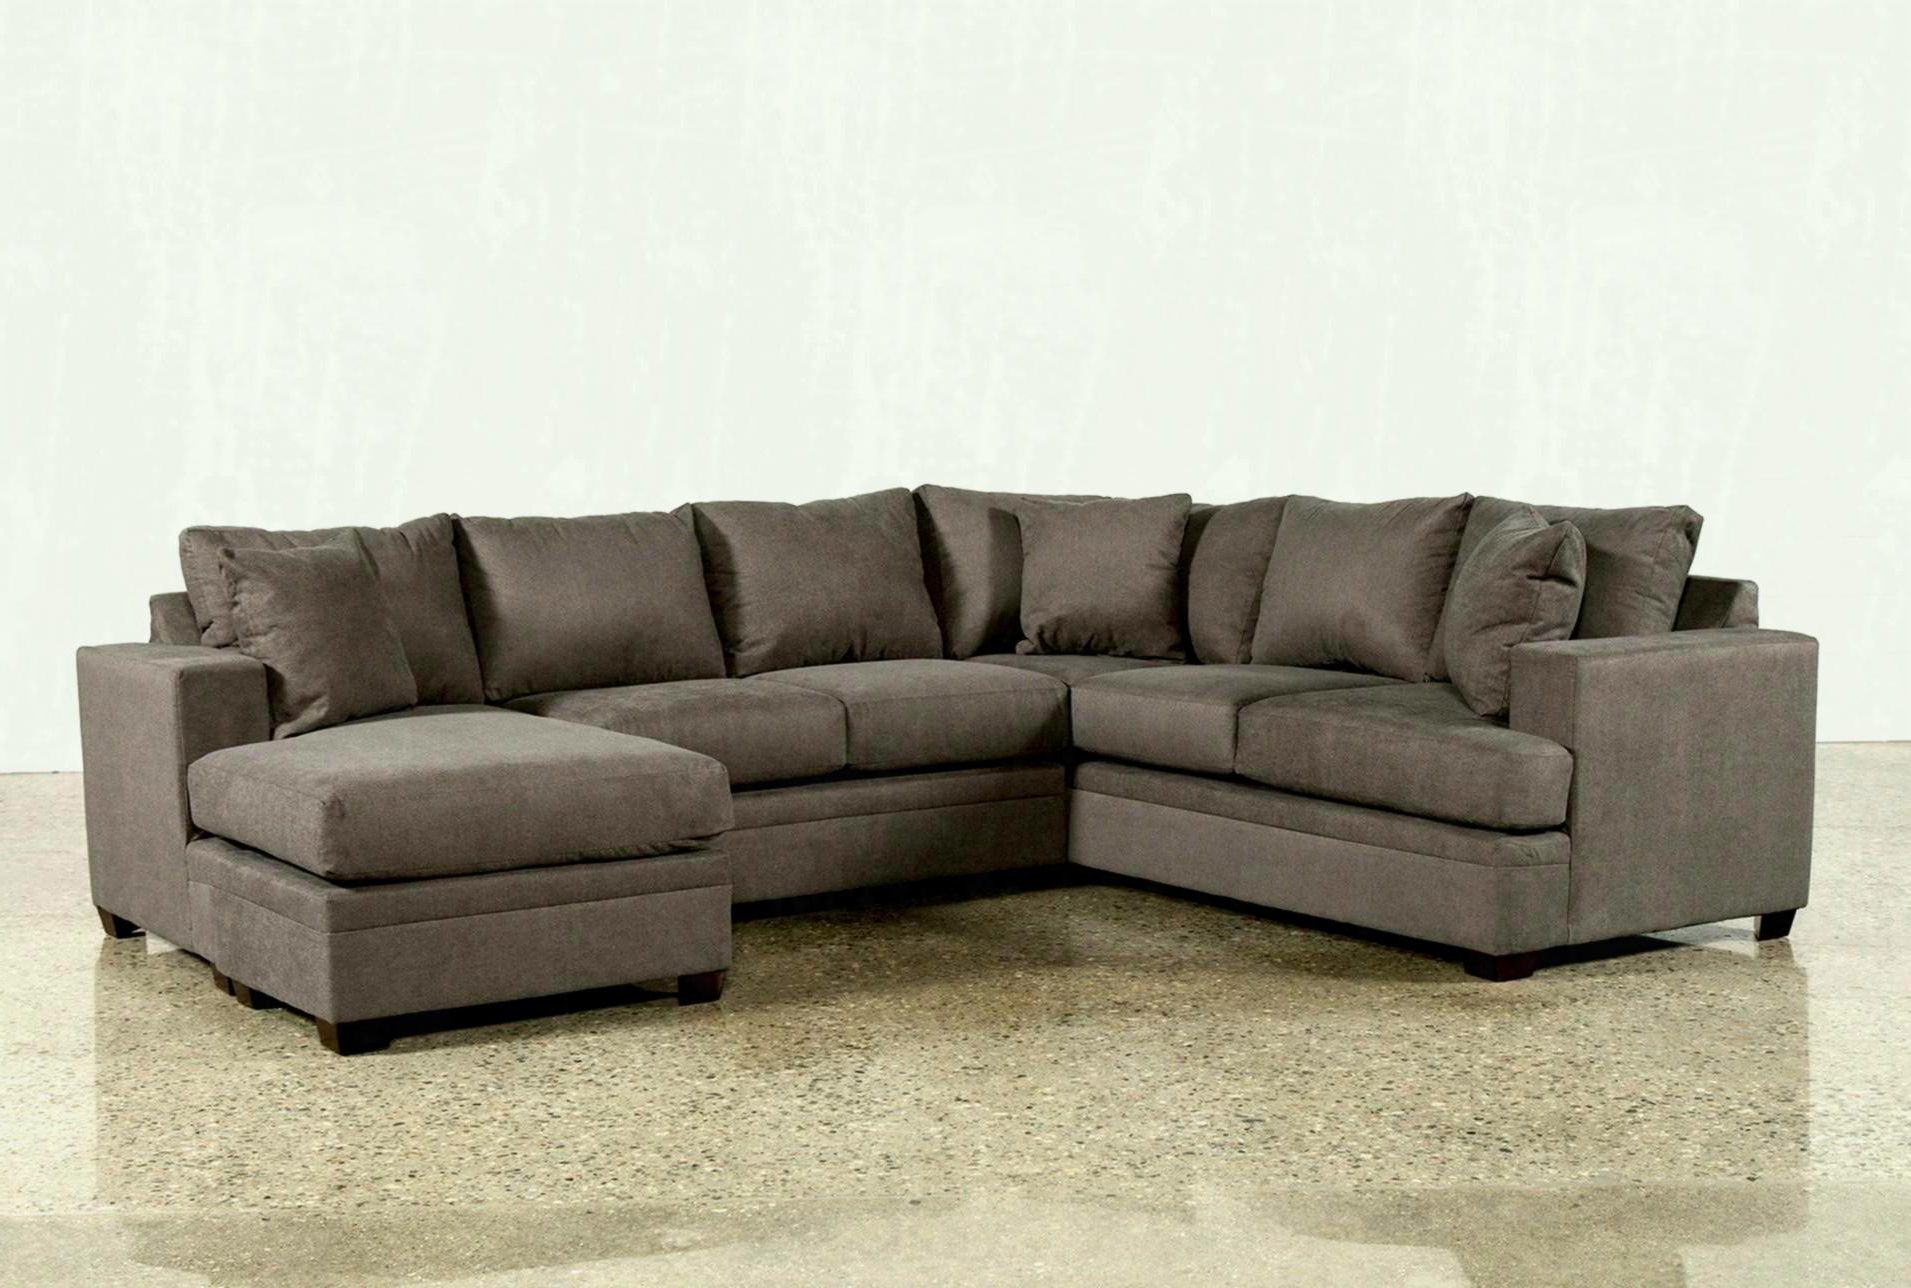 Aquarius Dark Grey 2 Piece Sectionals With Raf Chaise For Recent Added To Cart Aquarius Light Grey Piece Sectional W Raf Chaise (View 6 of 20)